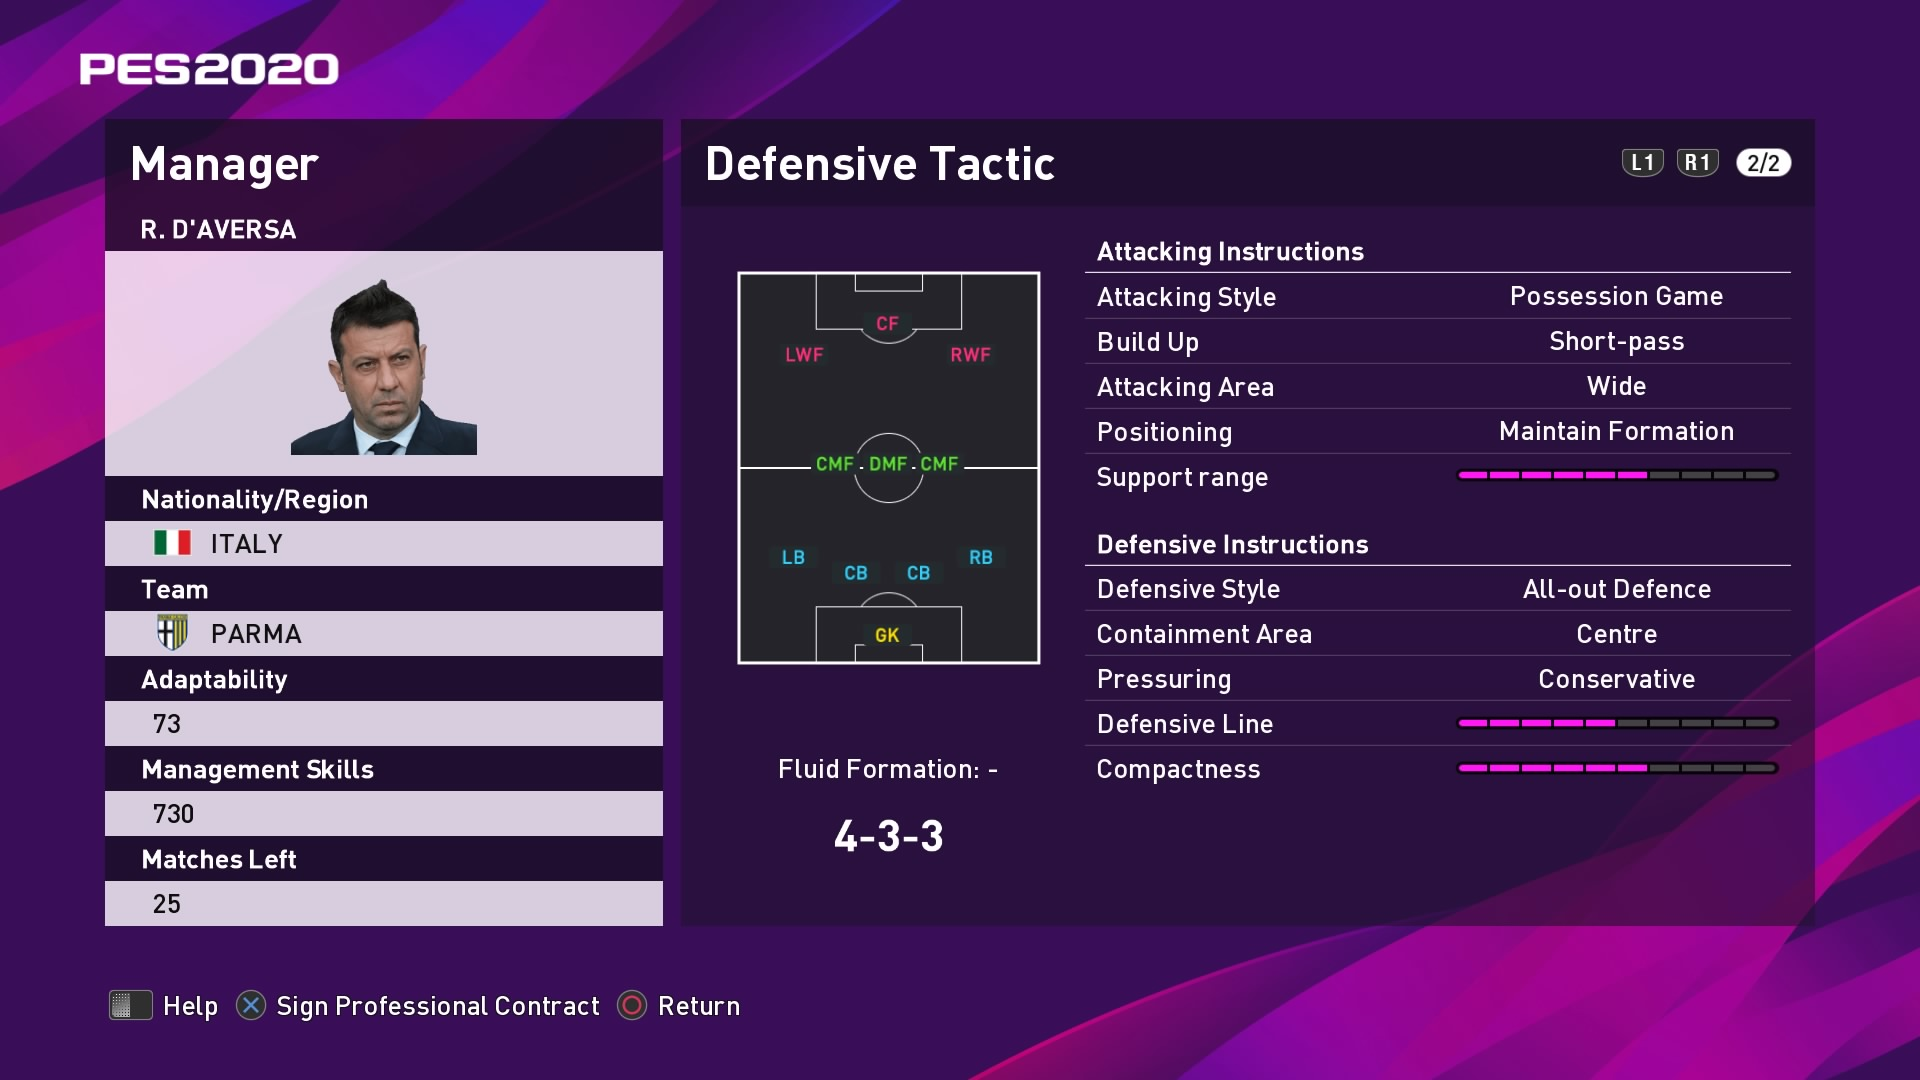 R. D'Aversa (Roberto D'Aversa) Defensive Tactic in PES 2020 myClub